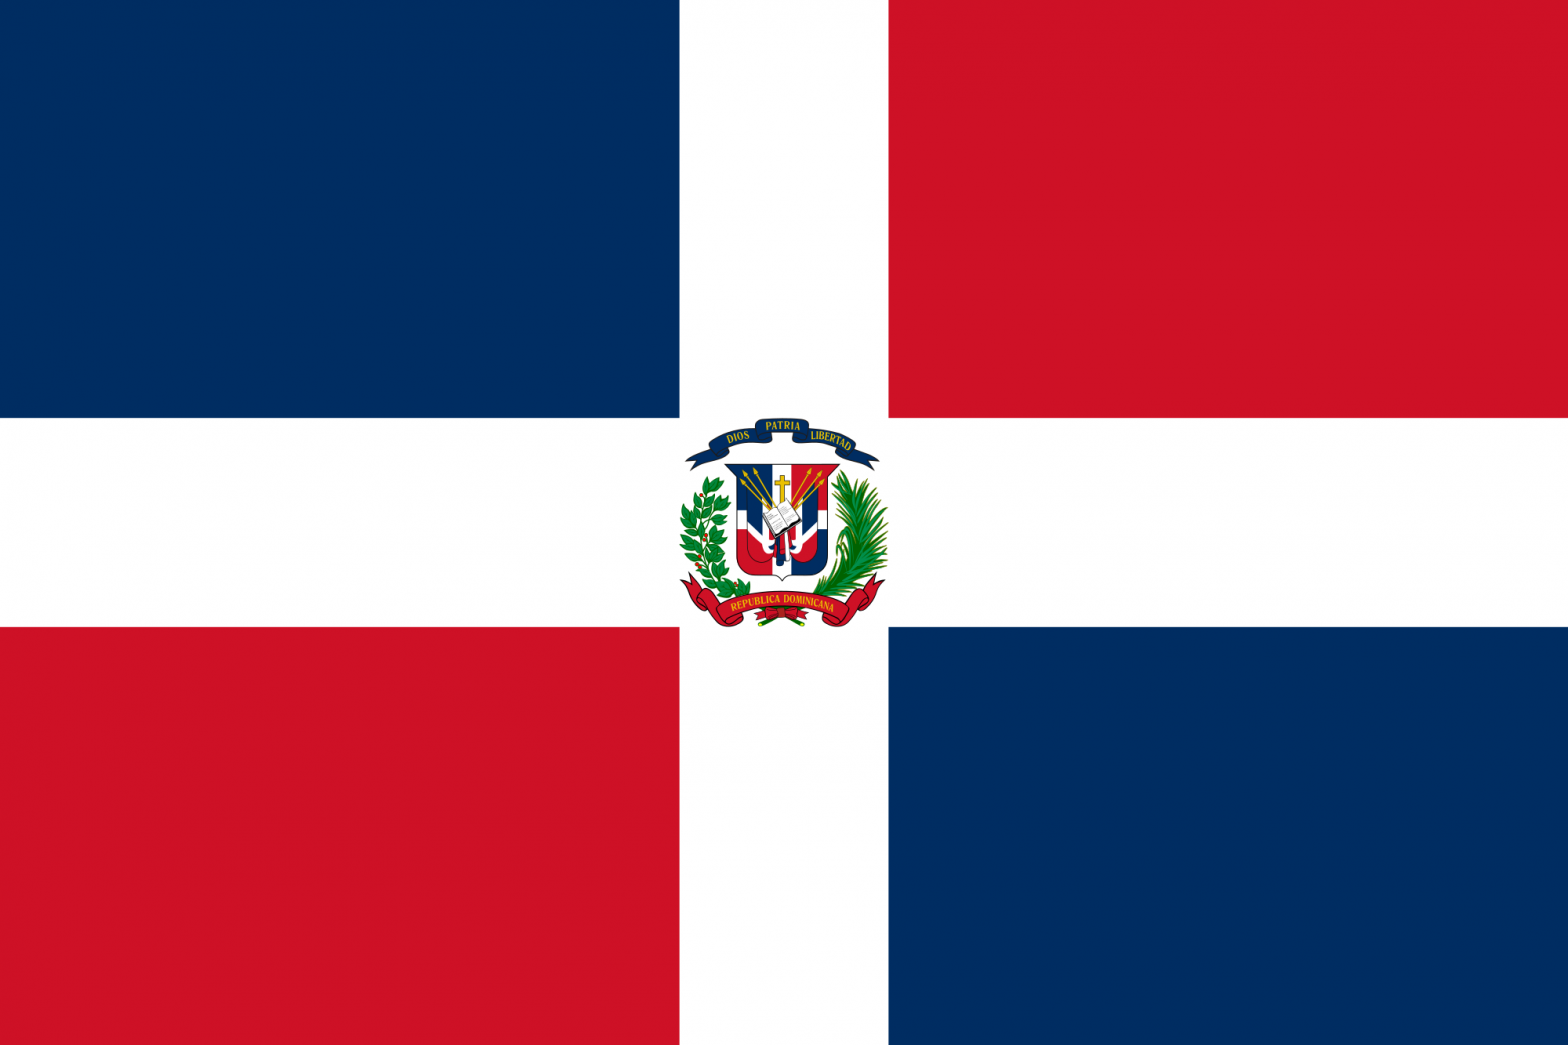 bandera republica dominicana